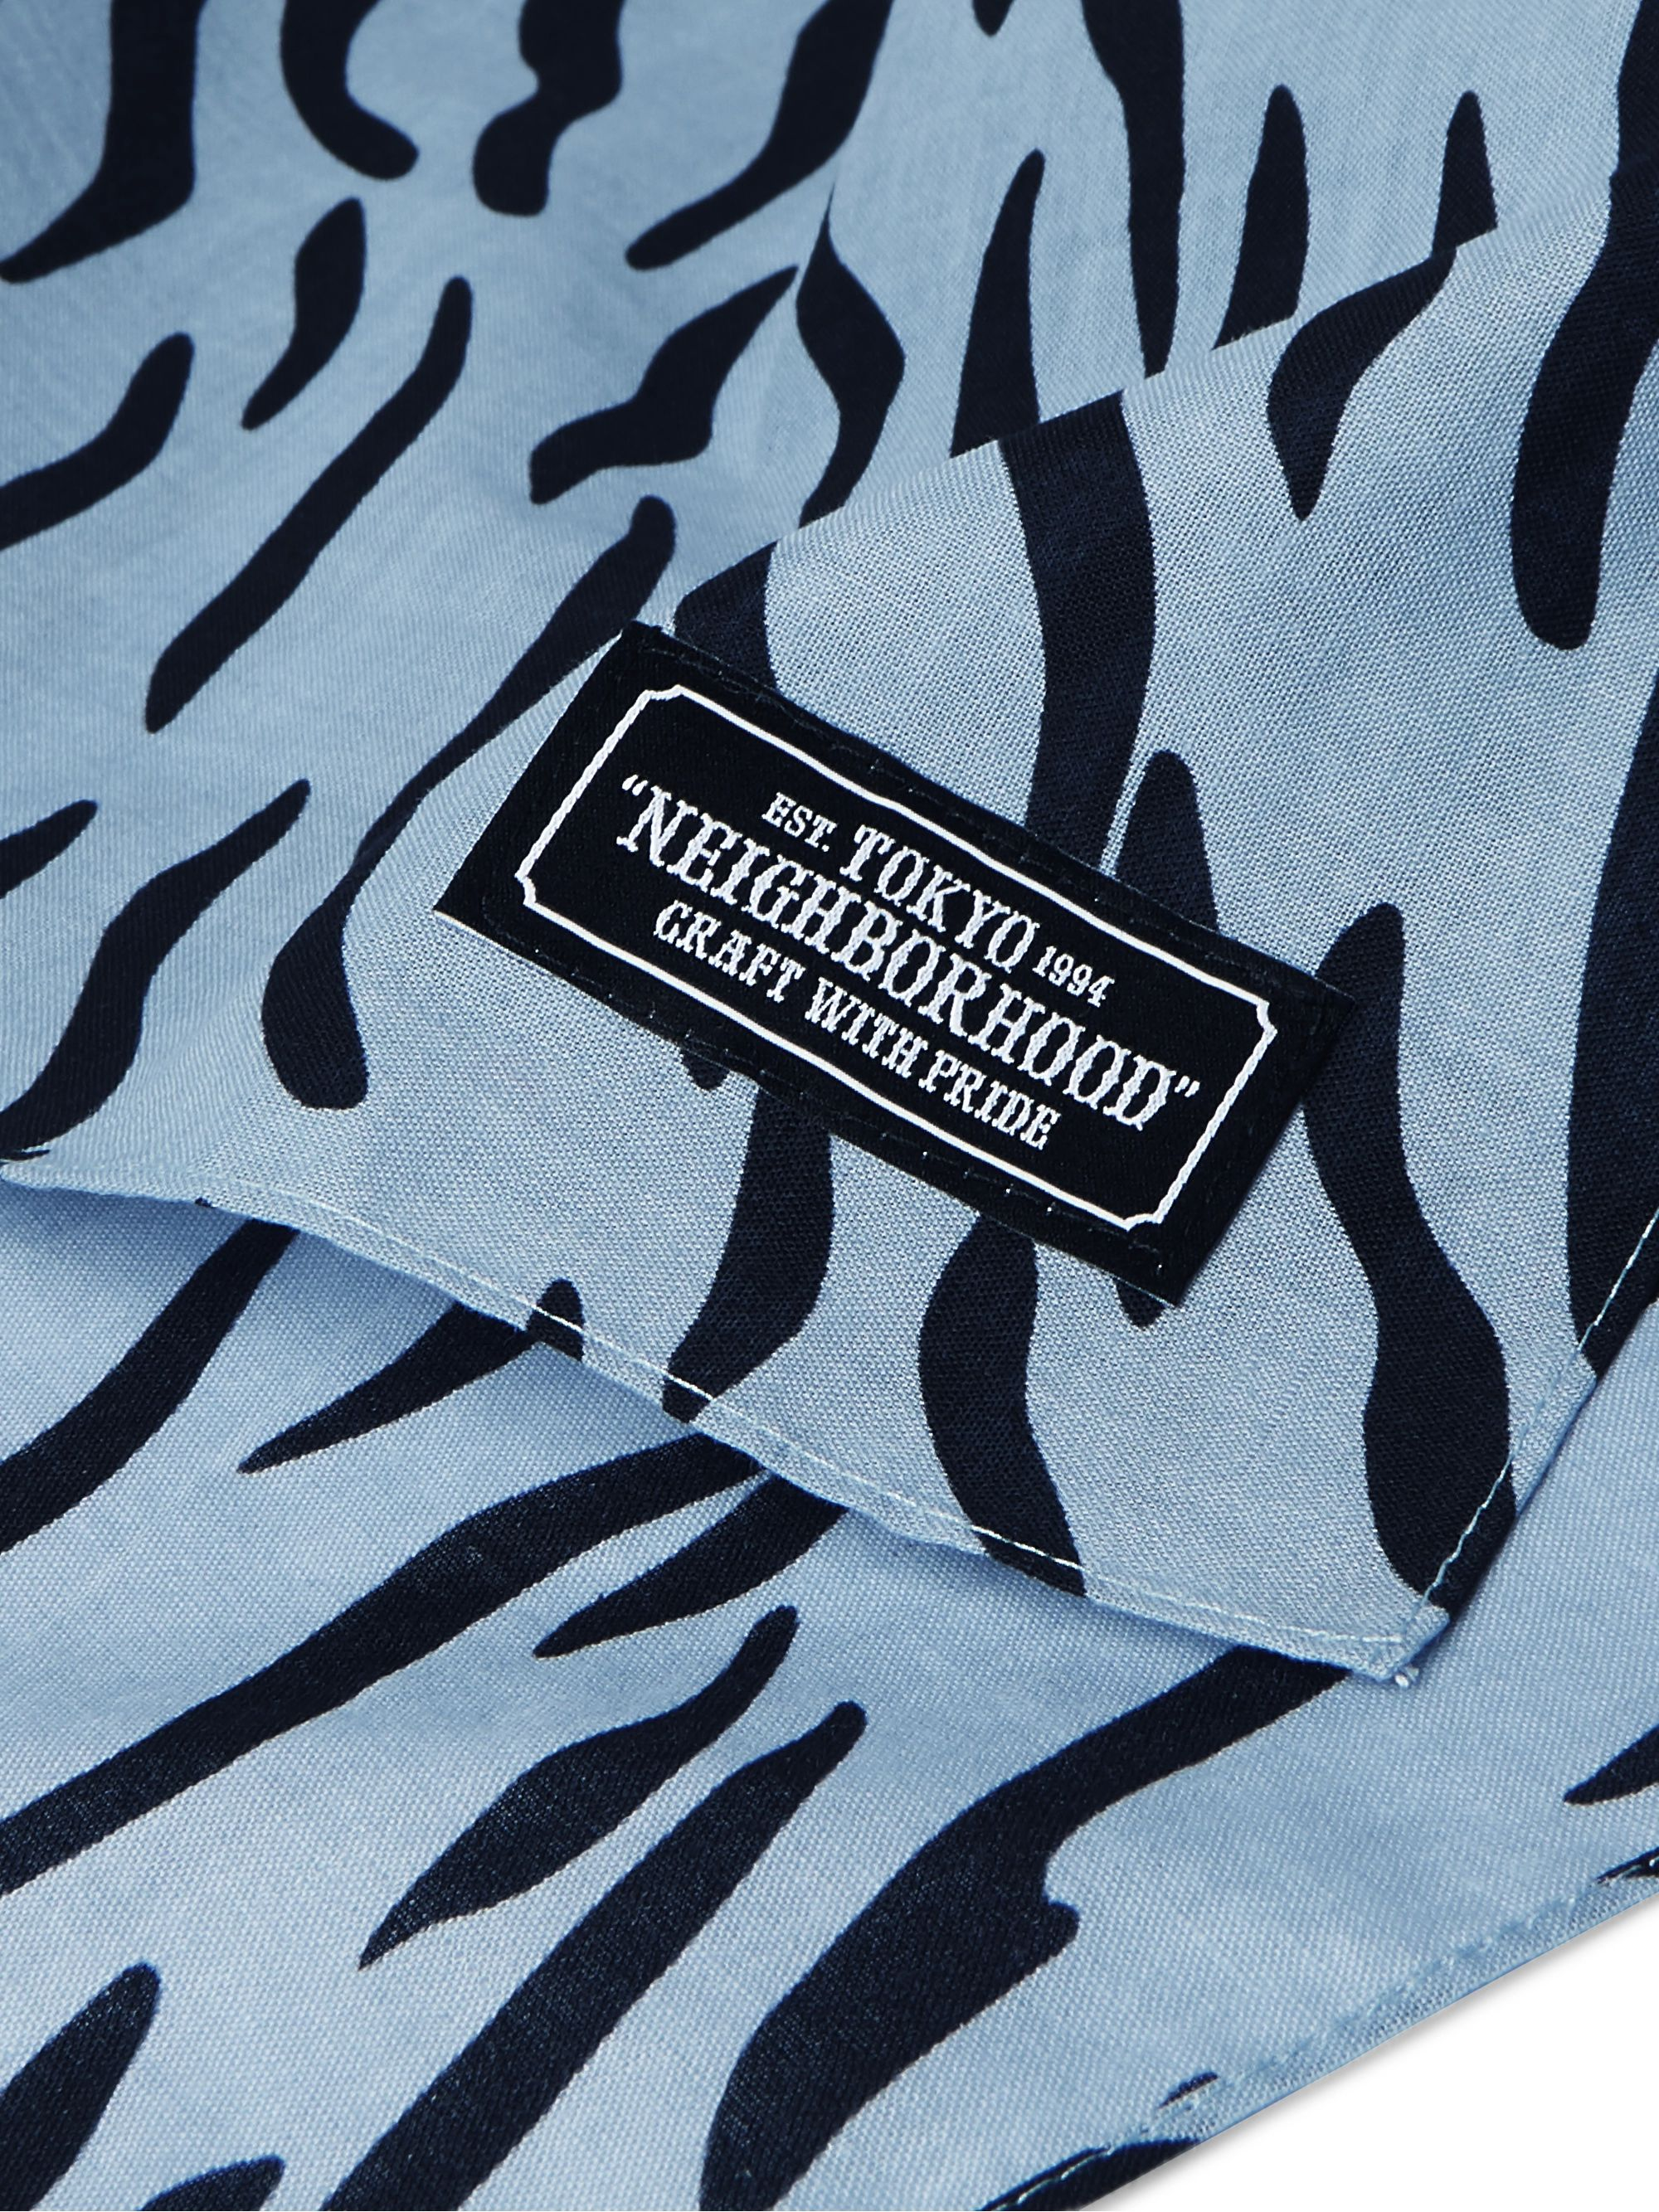 Neighborhood Printed Cotton Bandana